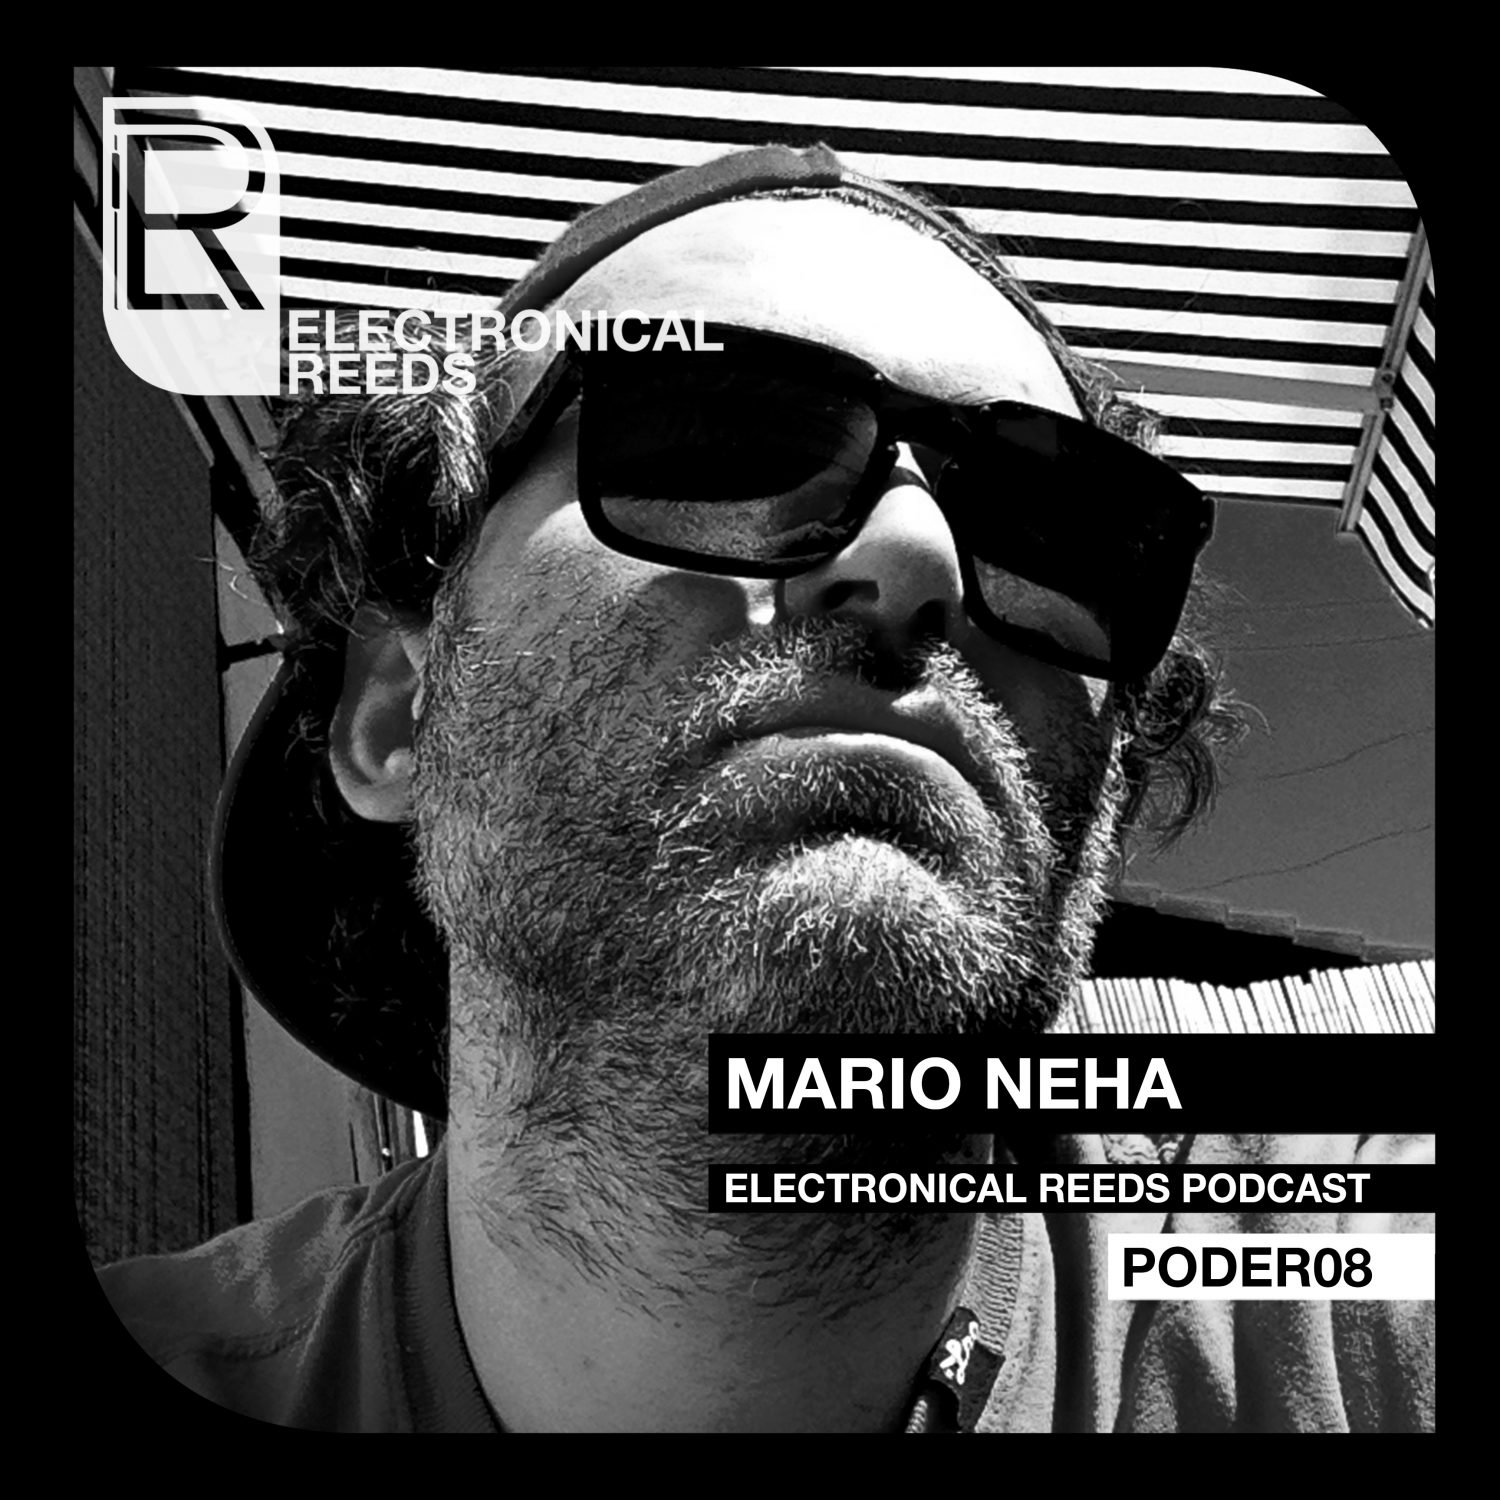 Mario Neha - Electronical Reeds Podcast #08